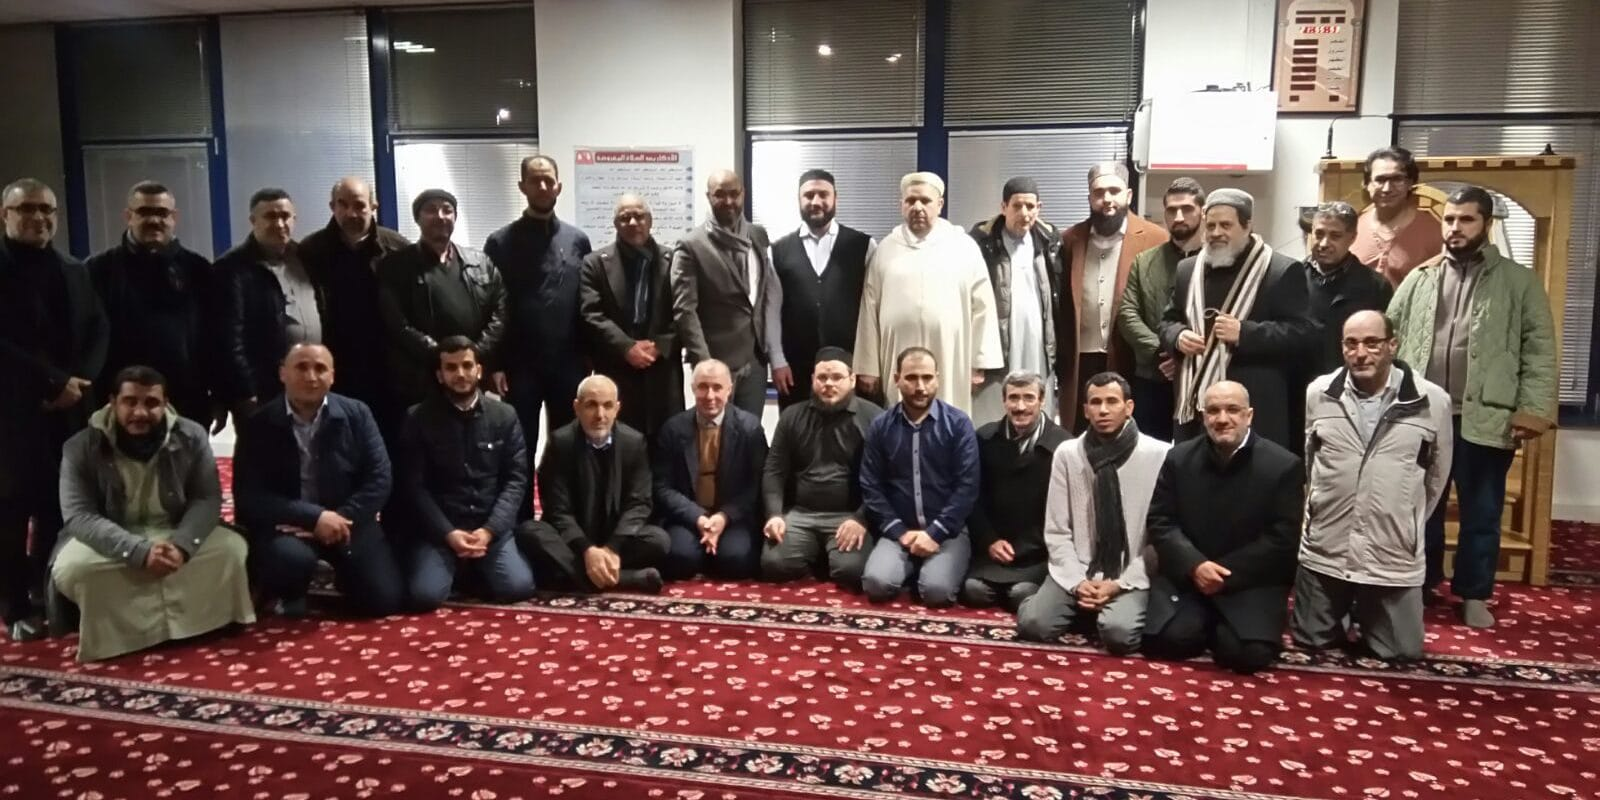 Statut des imams : le CRCM Alsace entend garder l'initiative